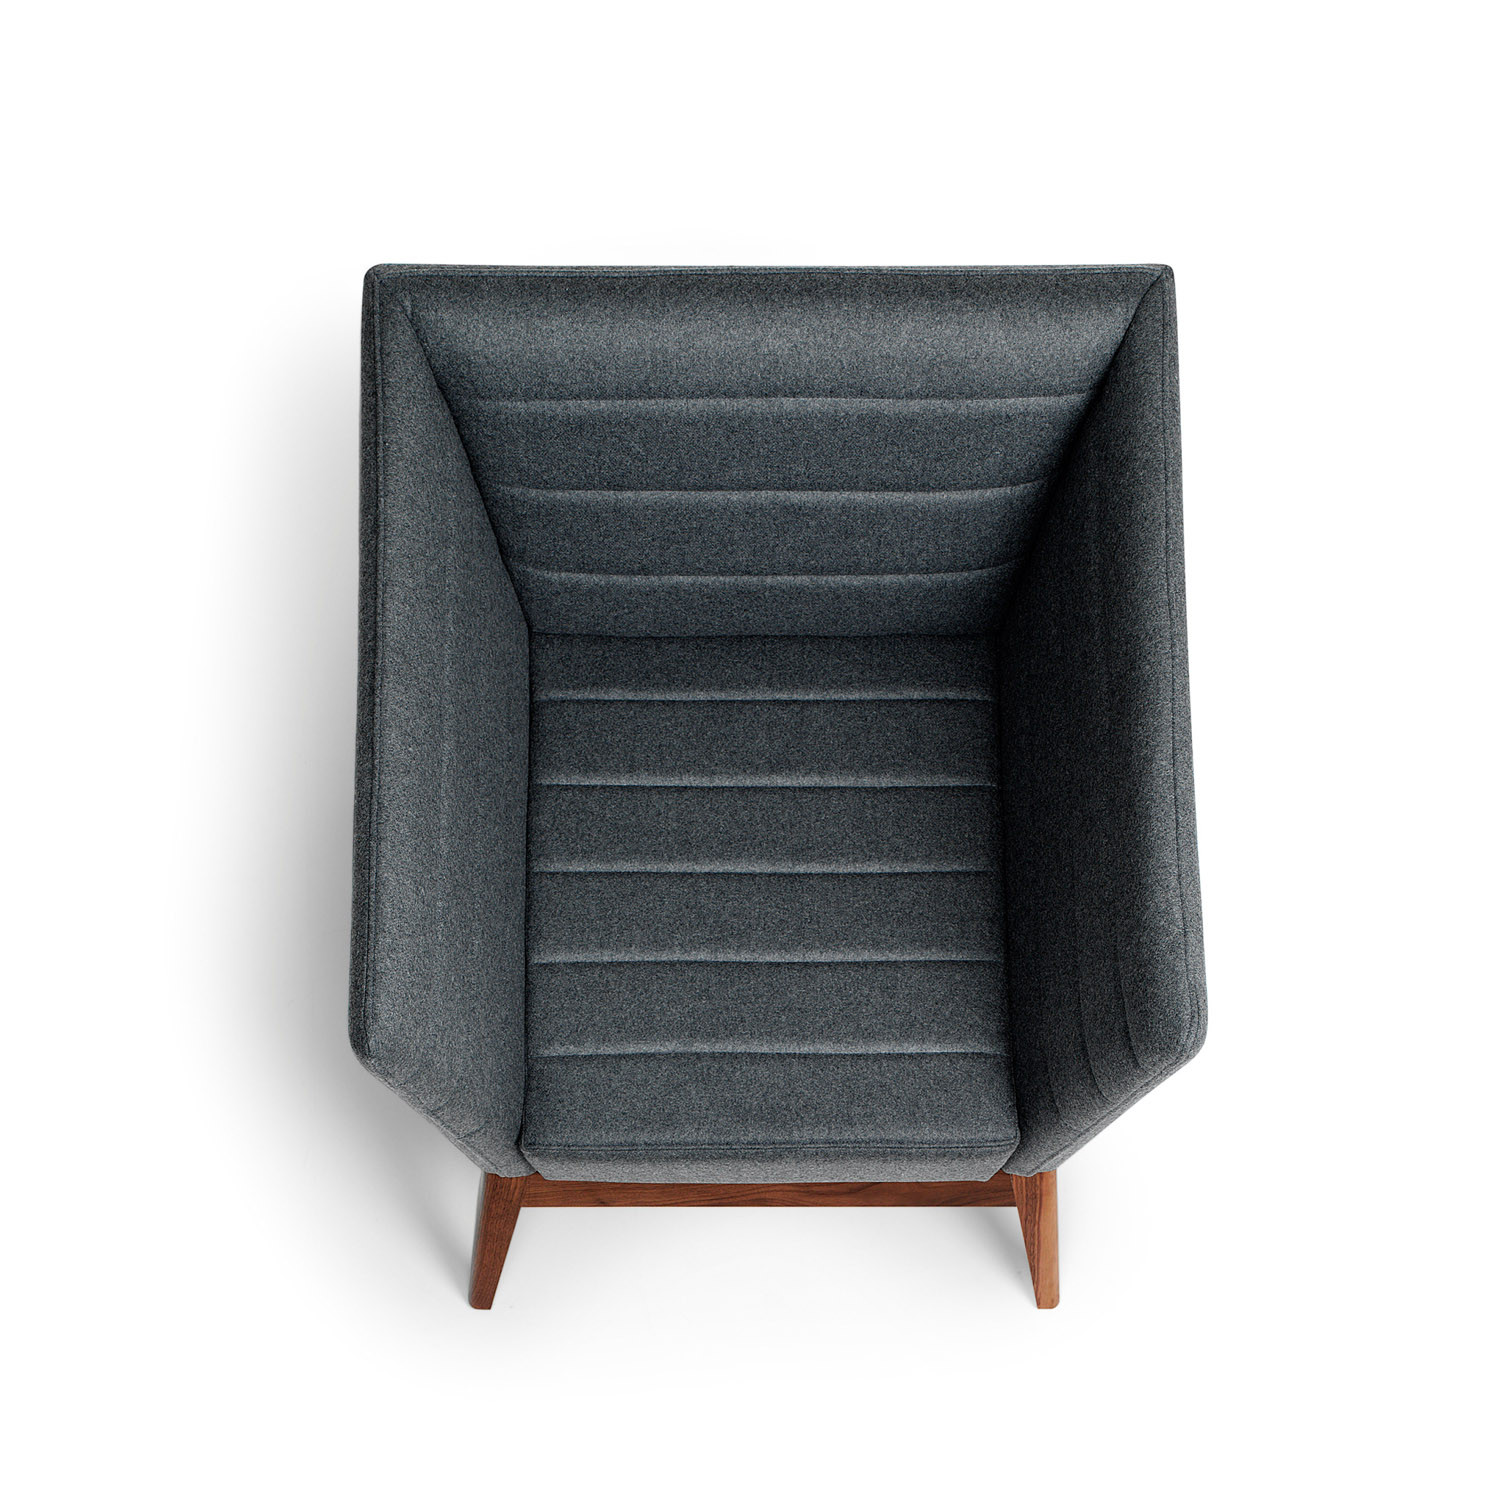 Callisto Designer Chair by Lyndon Design